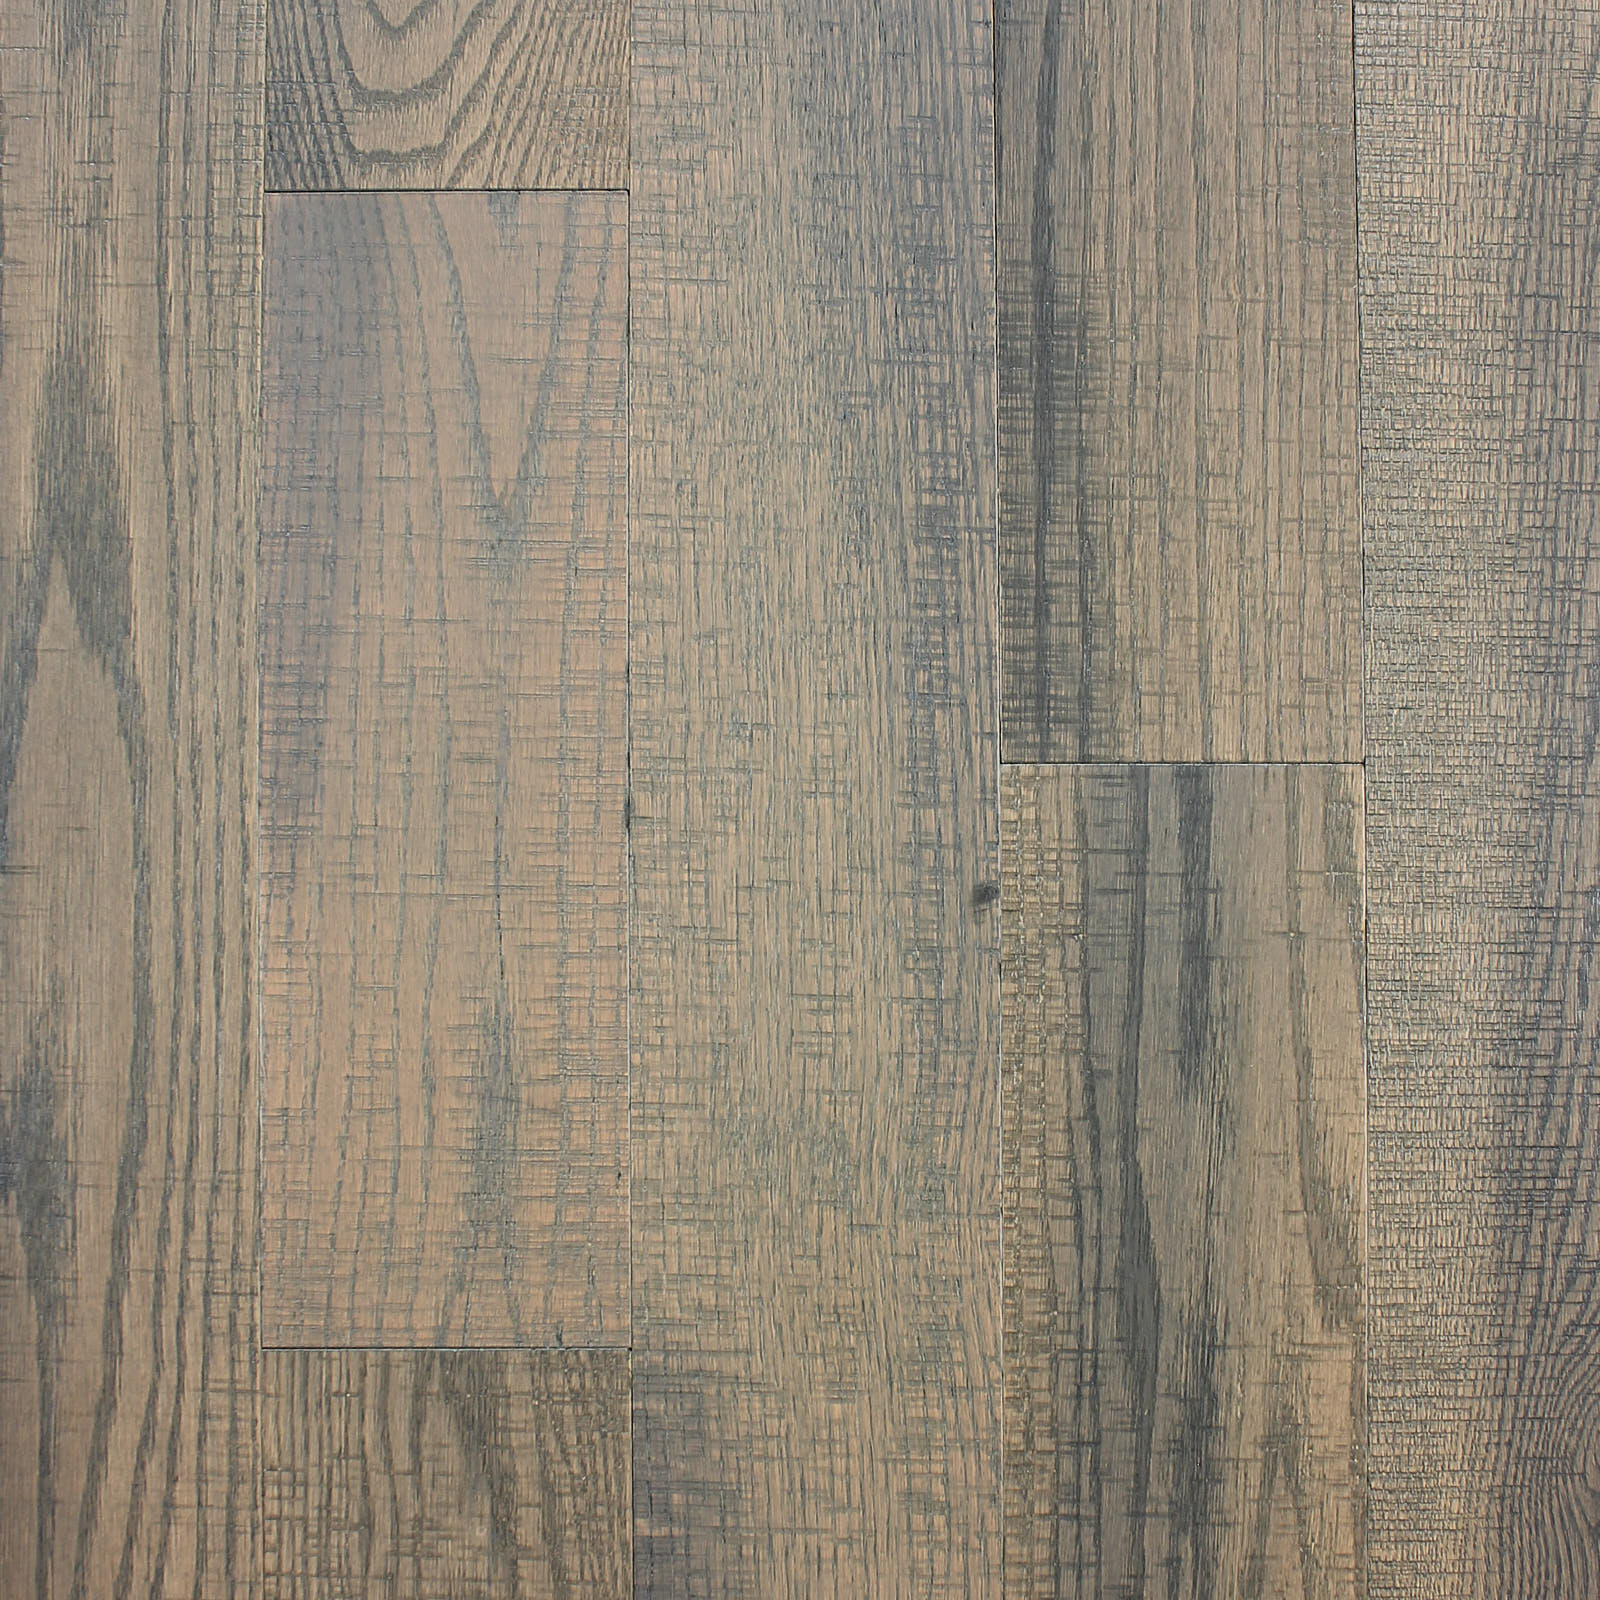 Saw Mill Sage Brush Hardwood Flooring